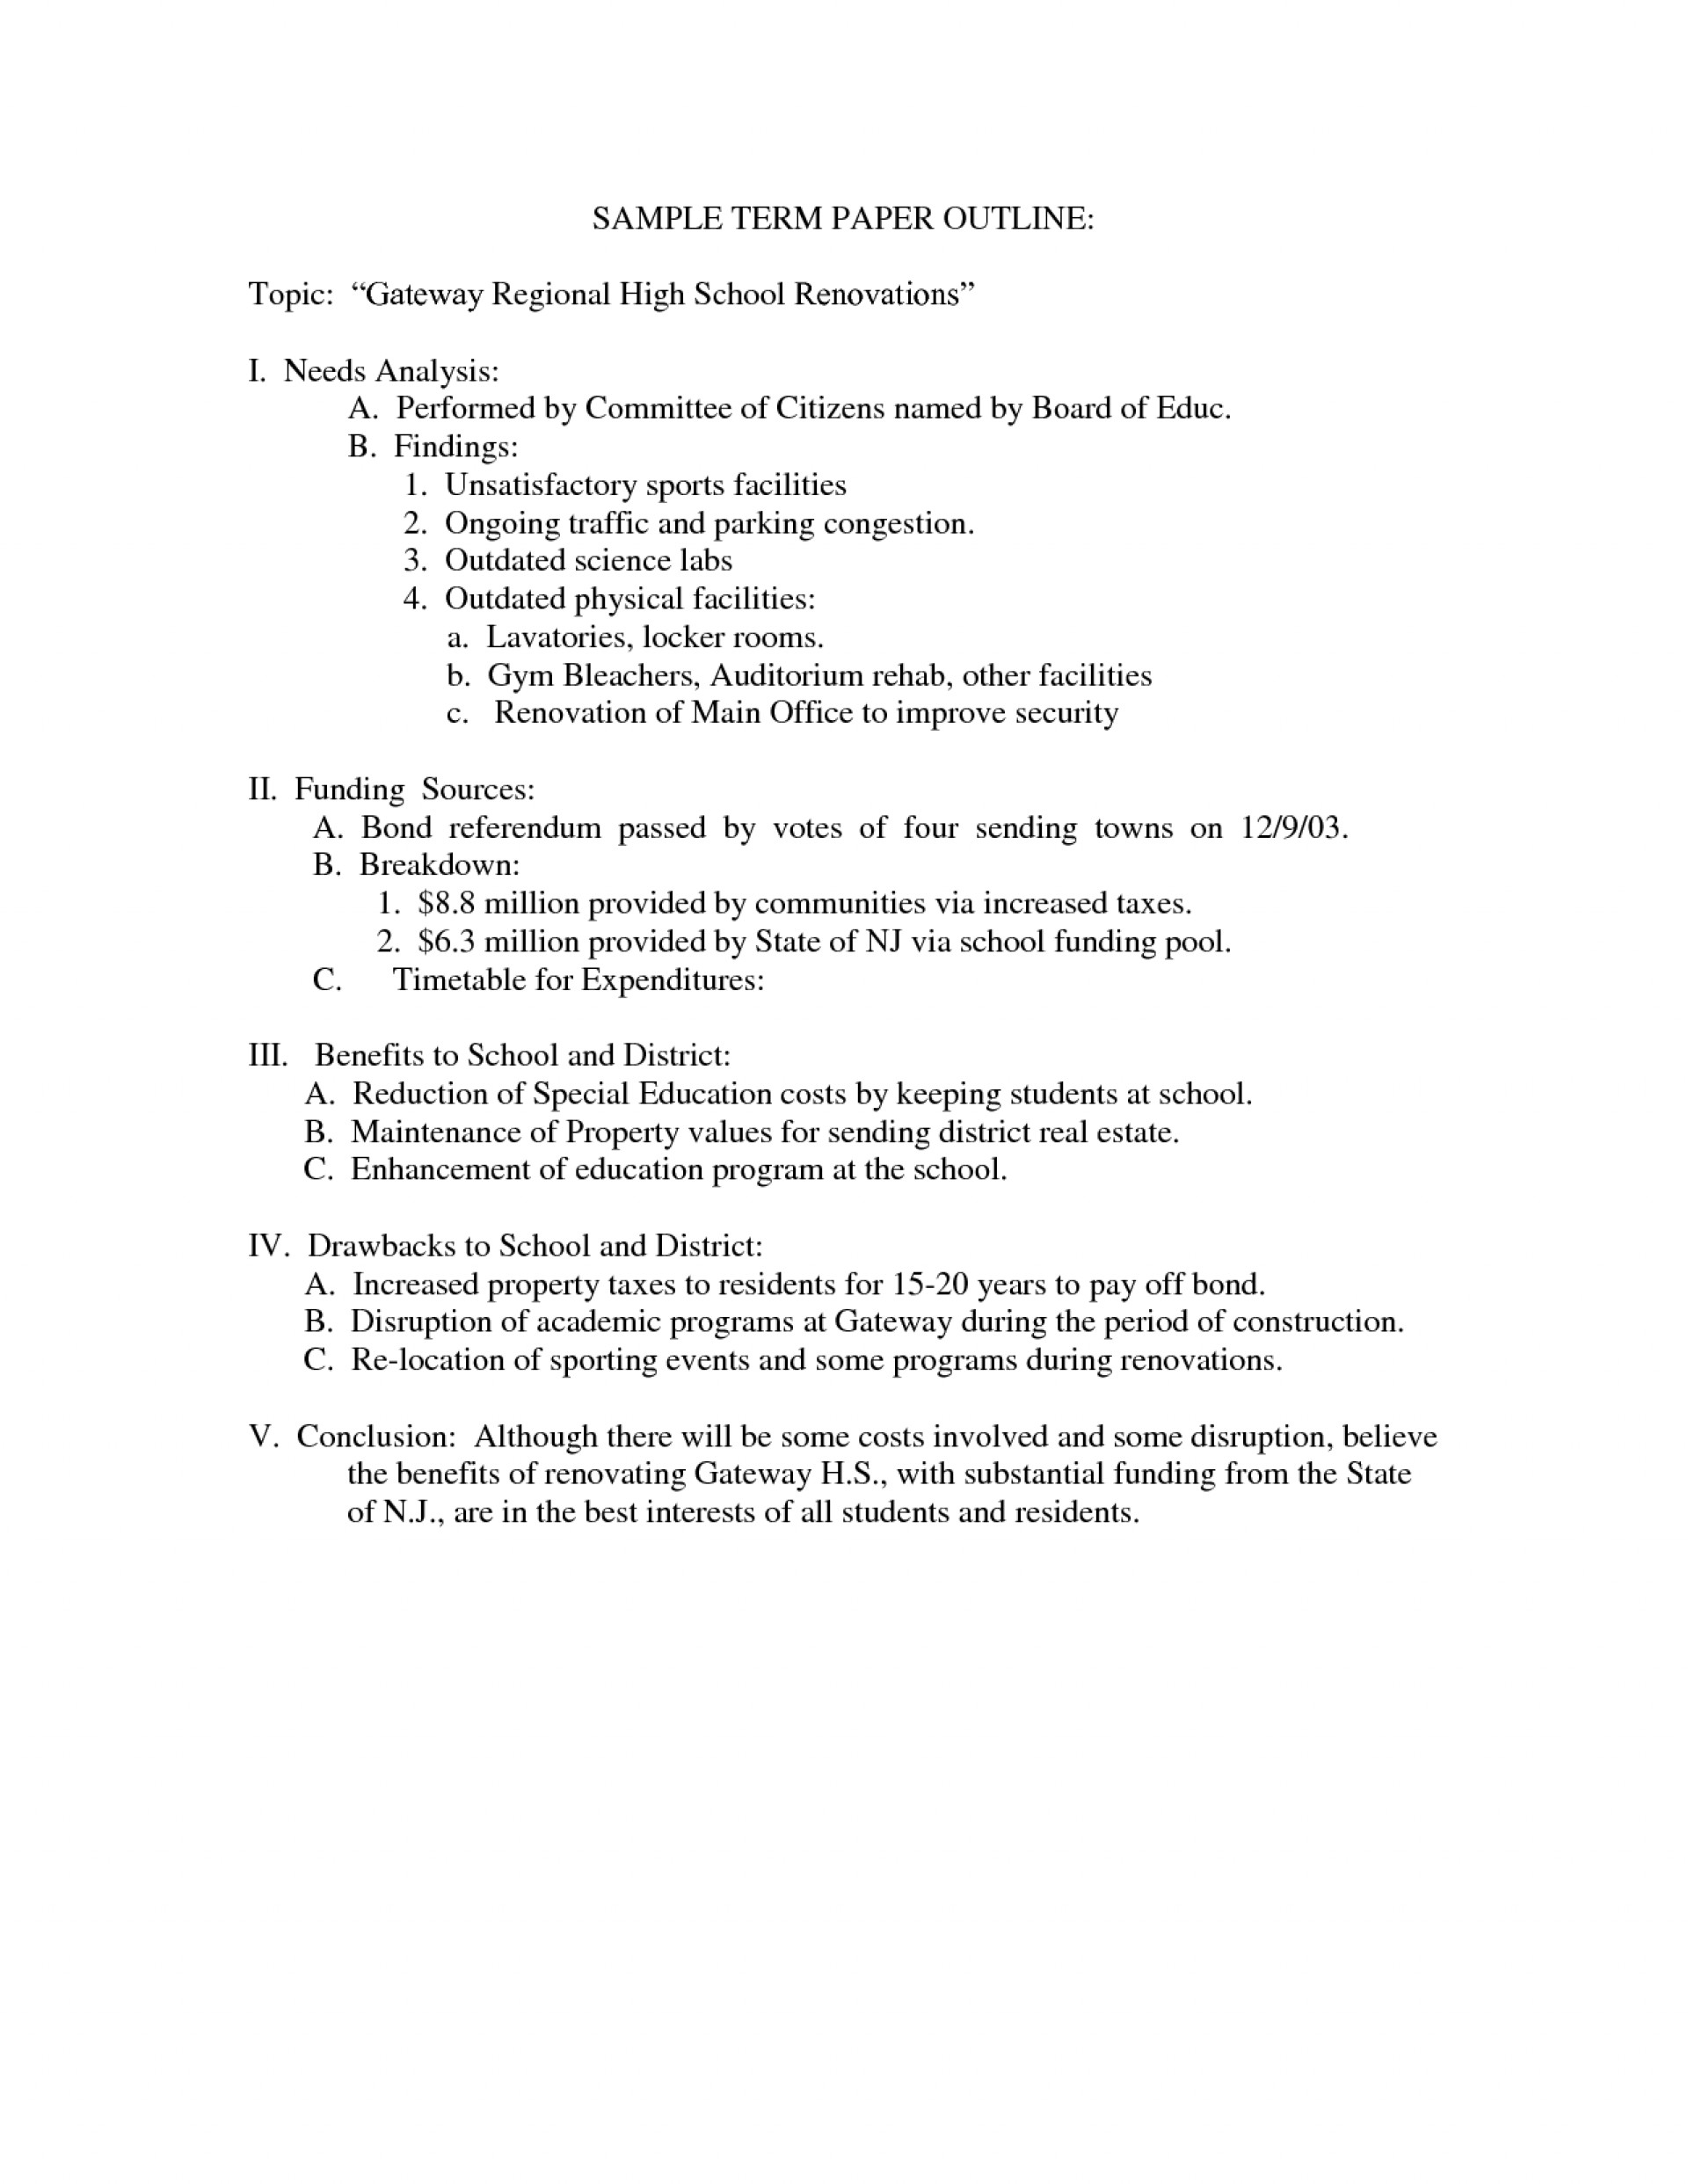 017 Term Paper Outline High School Research Topics Awesome Sports Topics- 1920